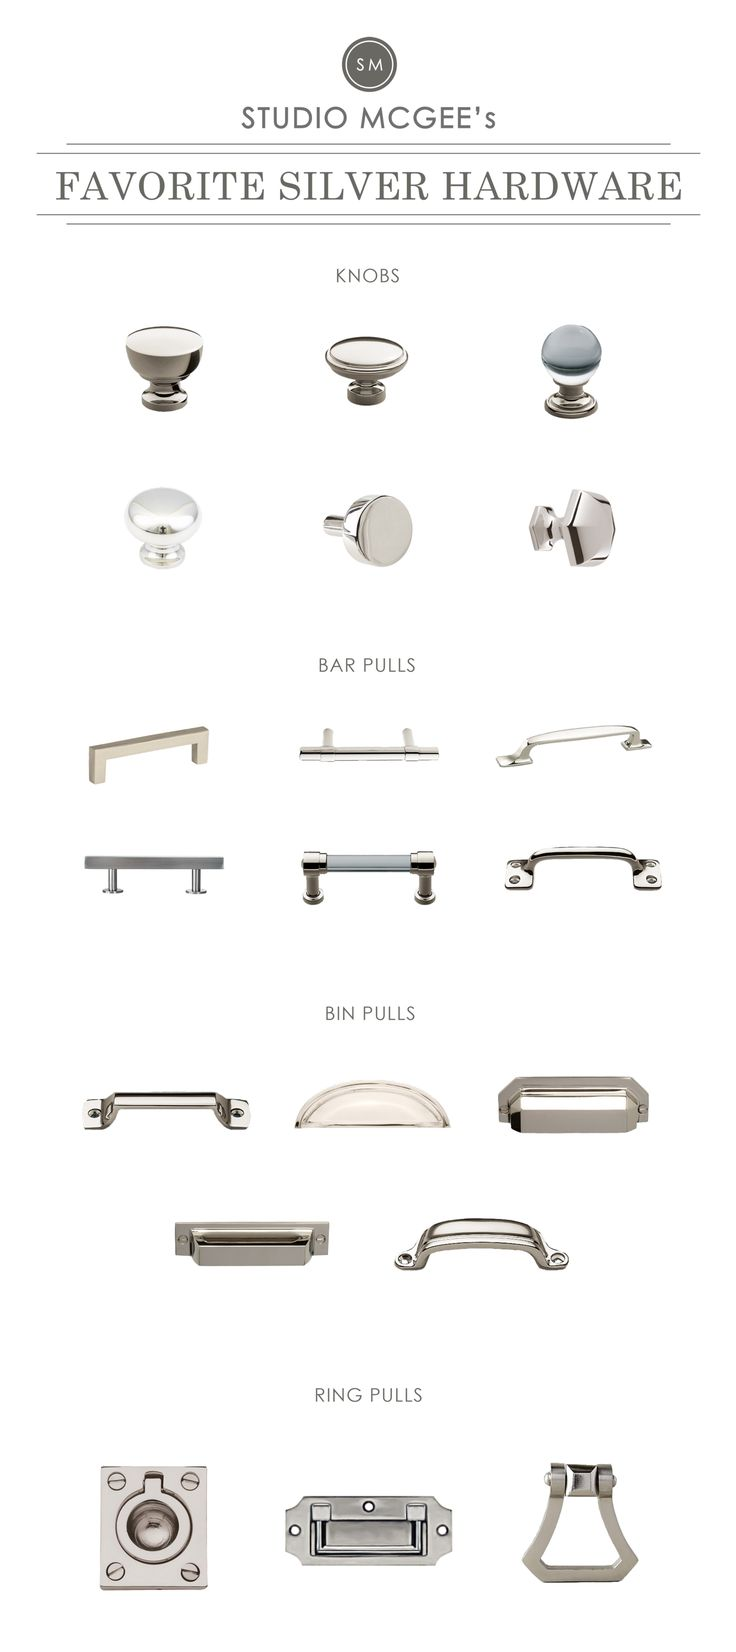 brushed nickel kitchen cabinet knobs studio mcgee silver hardware roundup   painting kitchen and bathroom cabinet ideas more at fosterginger pinterest a